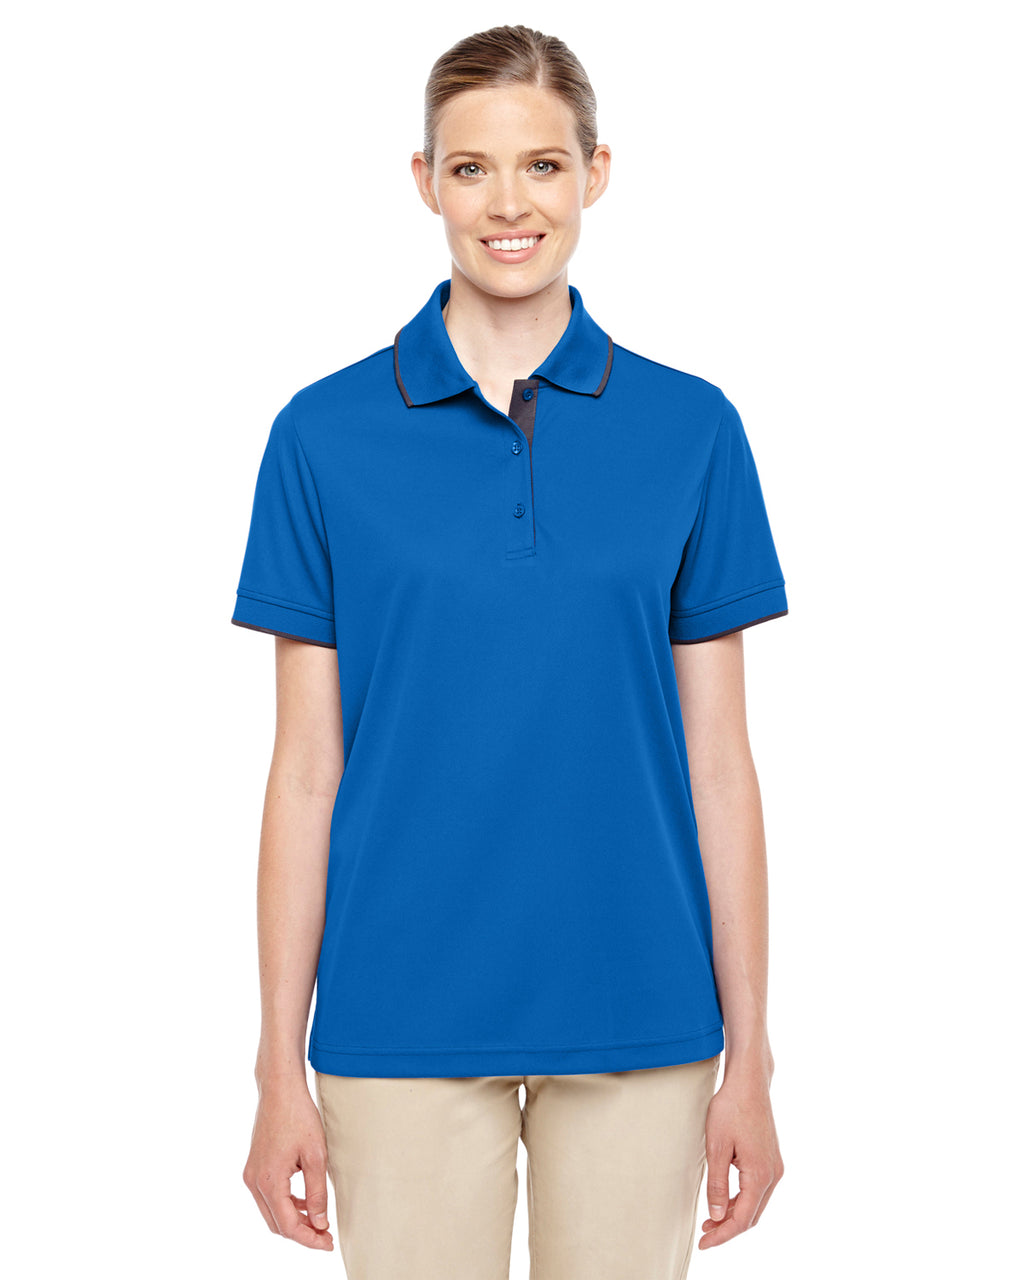 78222 - Core 365 Ladies' Motive Performance Piqué Polo with Tipped Collar